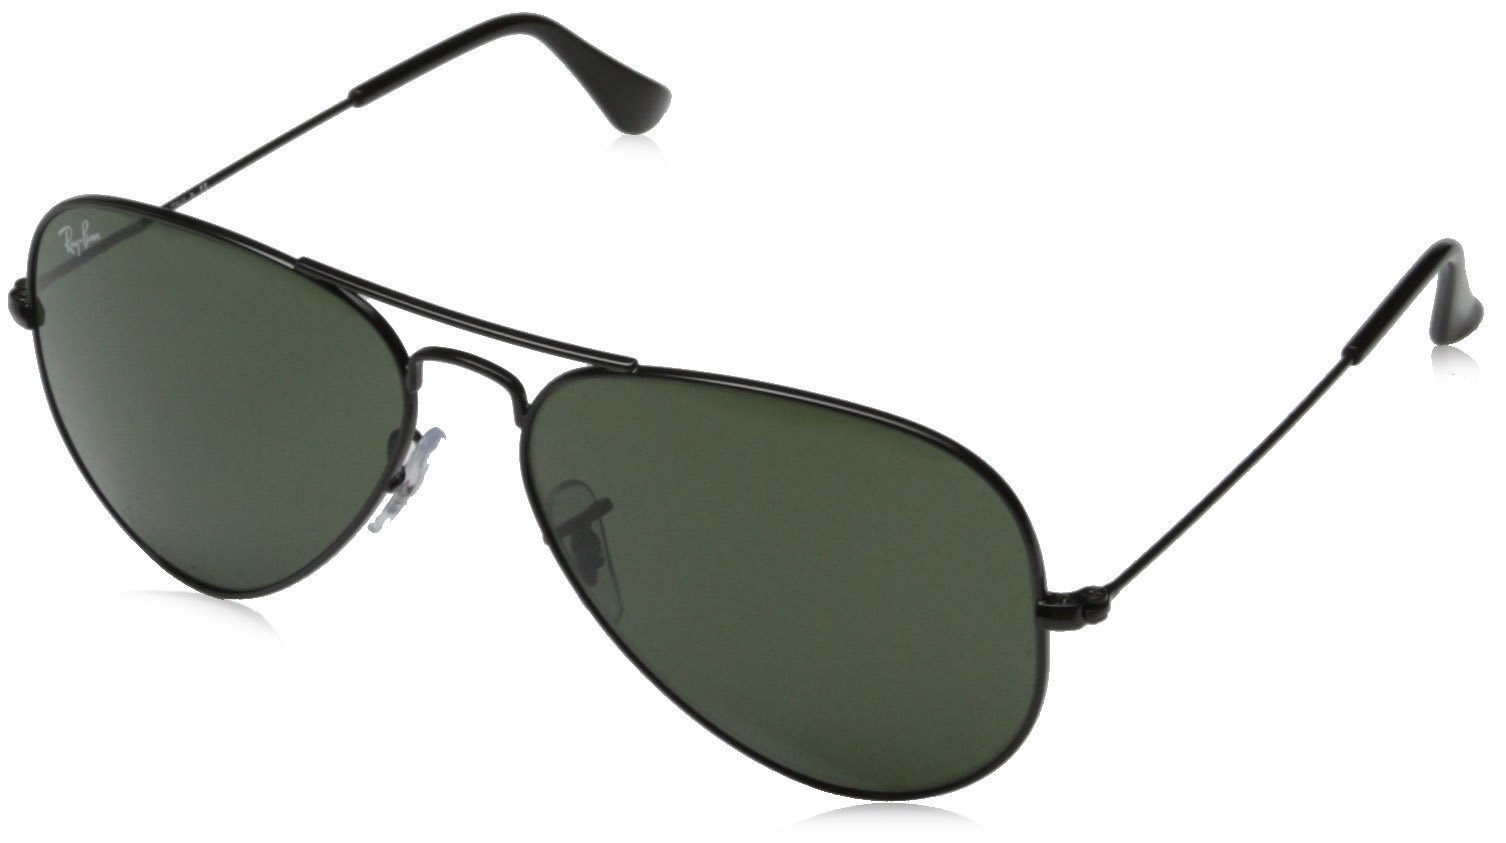 747c660990 Galleon - Ray-Ban MensWomen s Aviator Large Metal